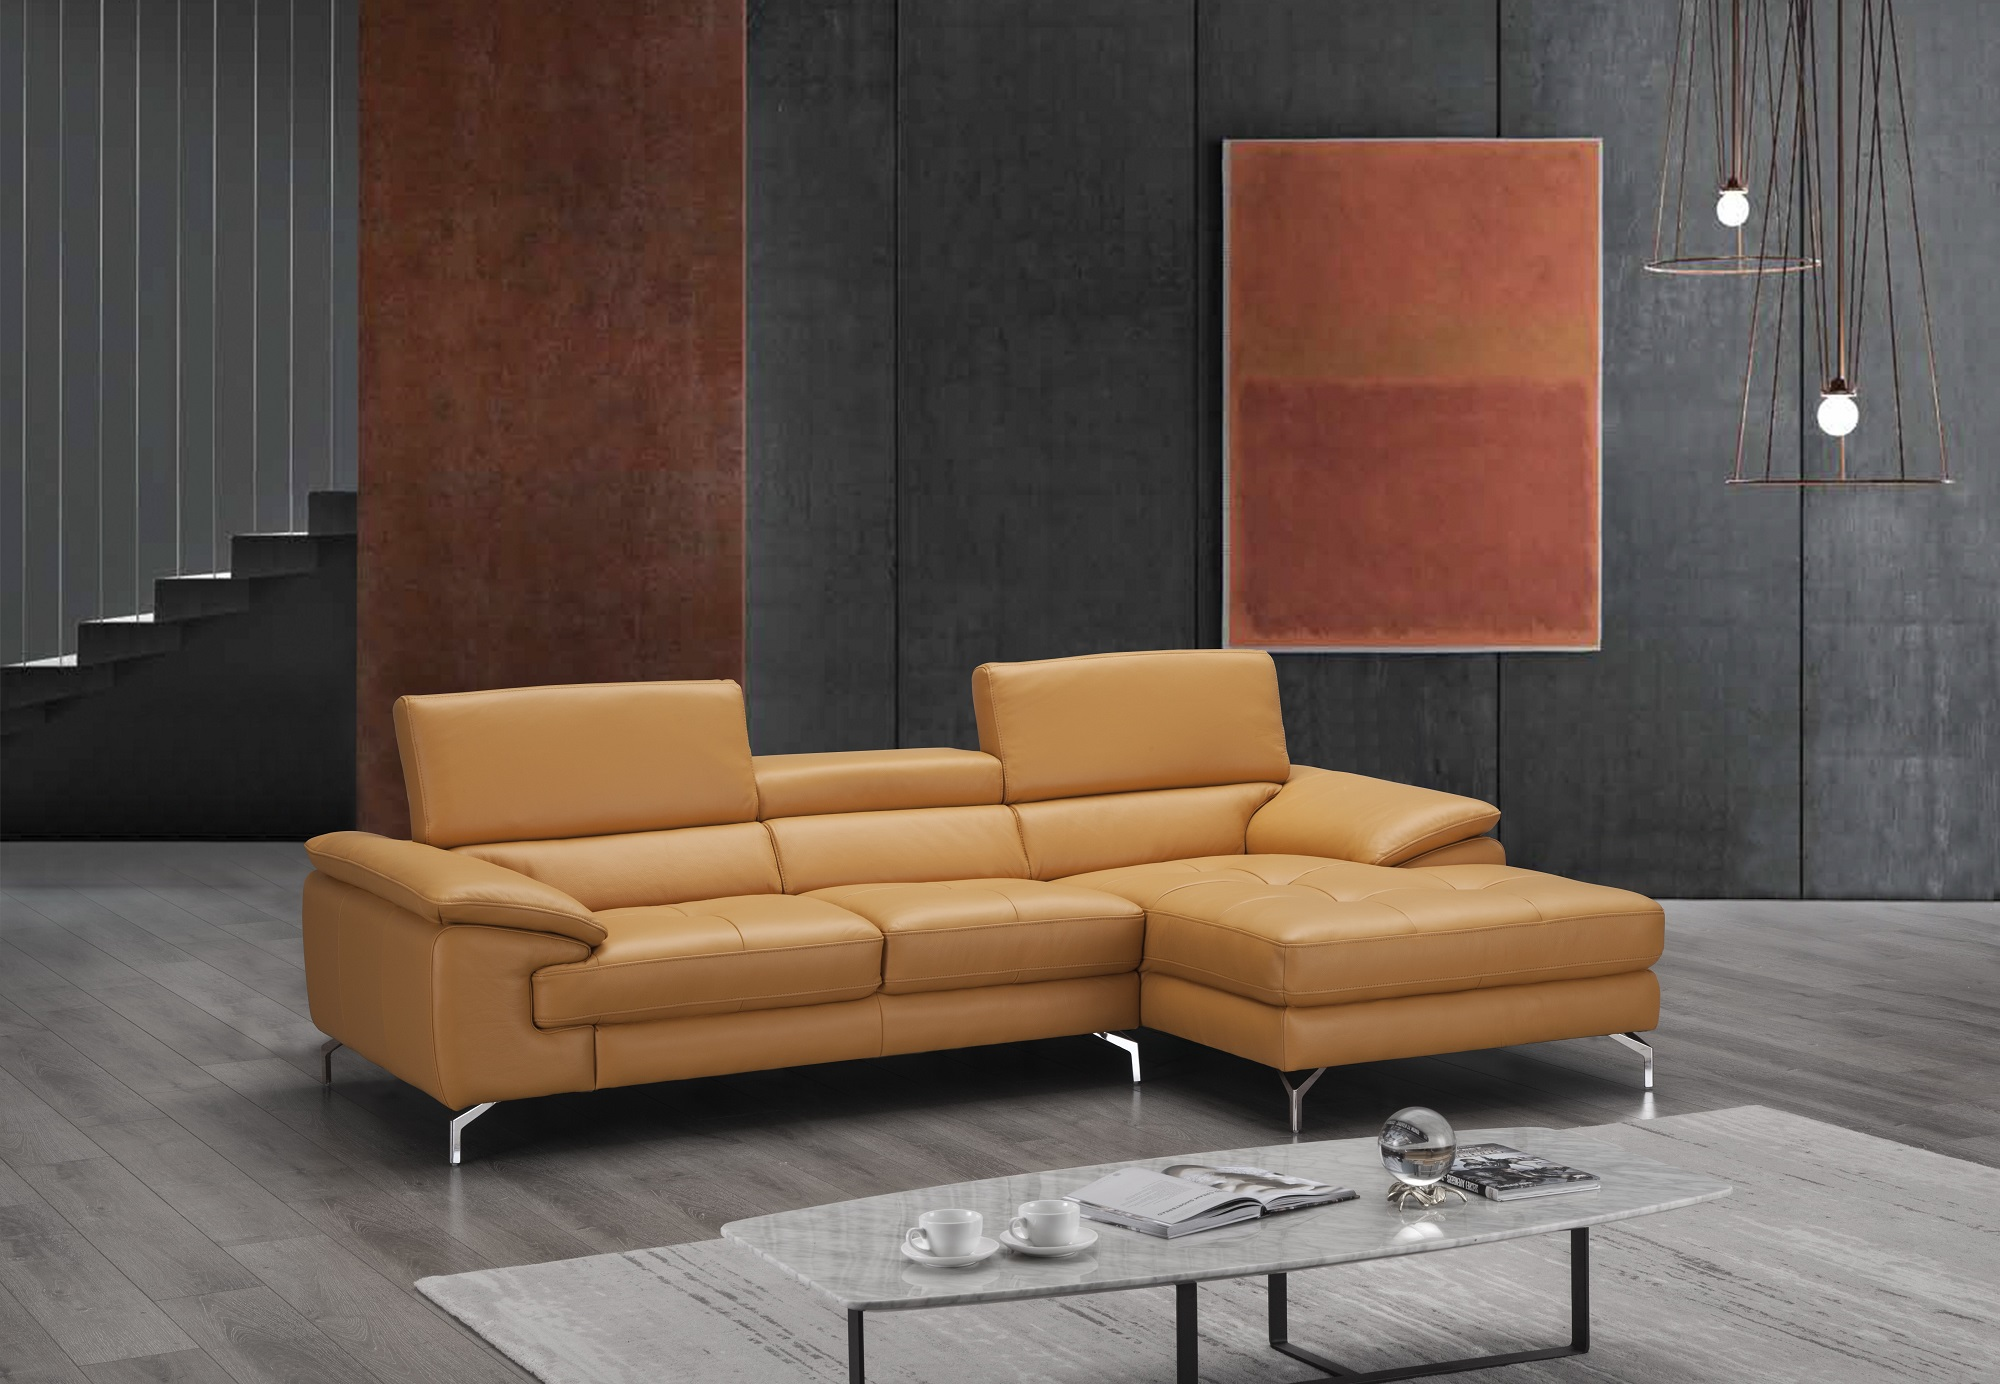 Superb Luxury Full Leather Corner Couch Caraccident5 Cool Chair Designs And Ideas Caraccident5Info